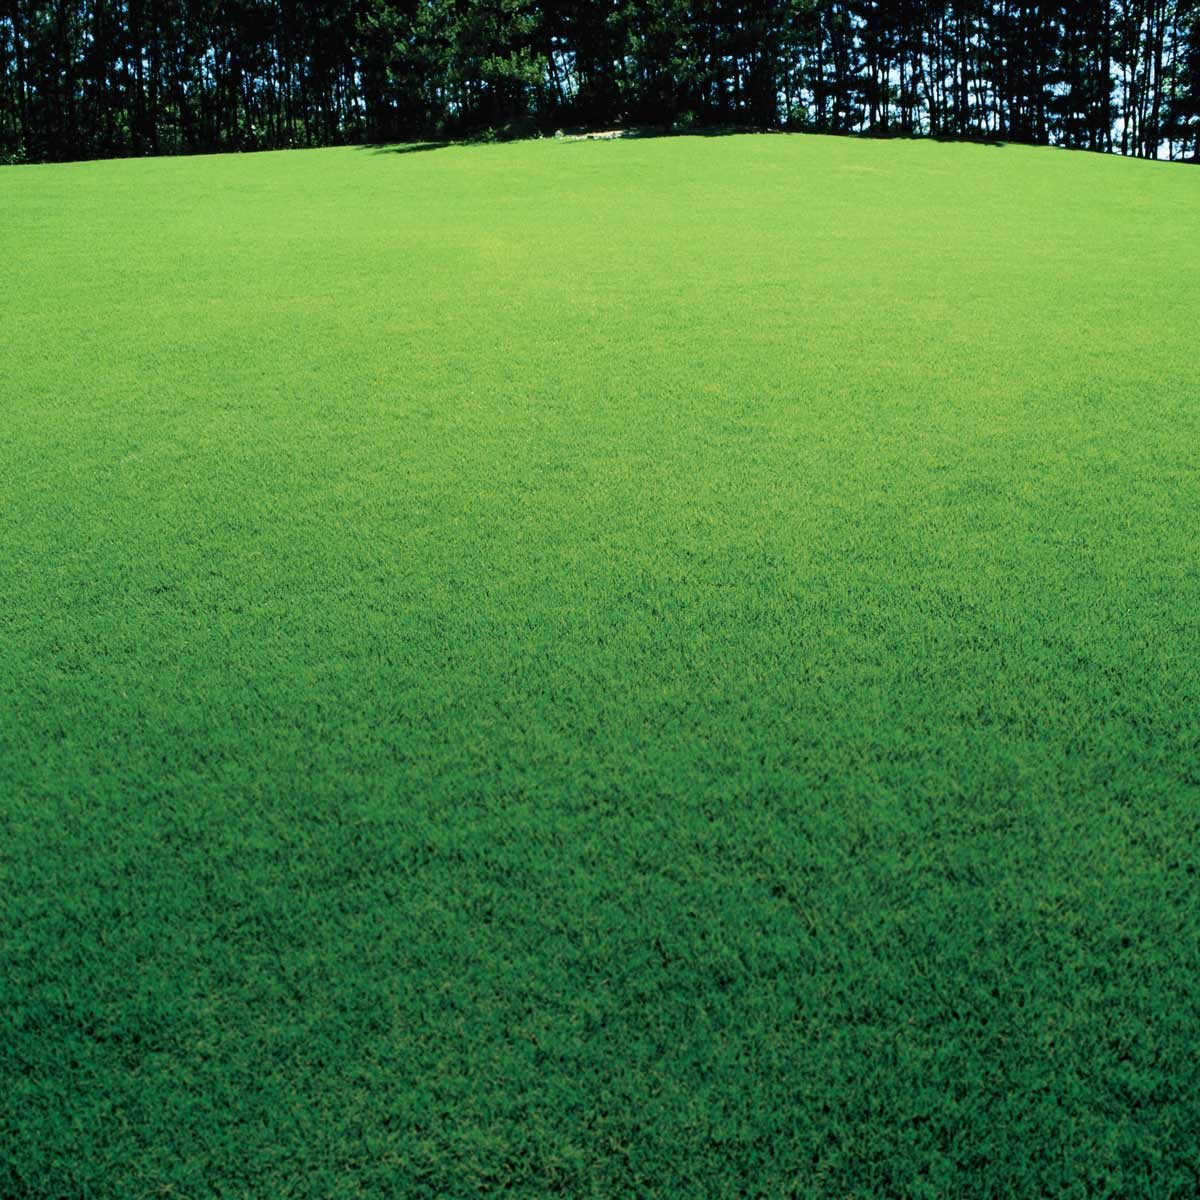 Patchy-Lawn